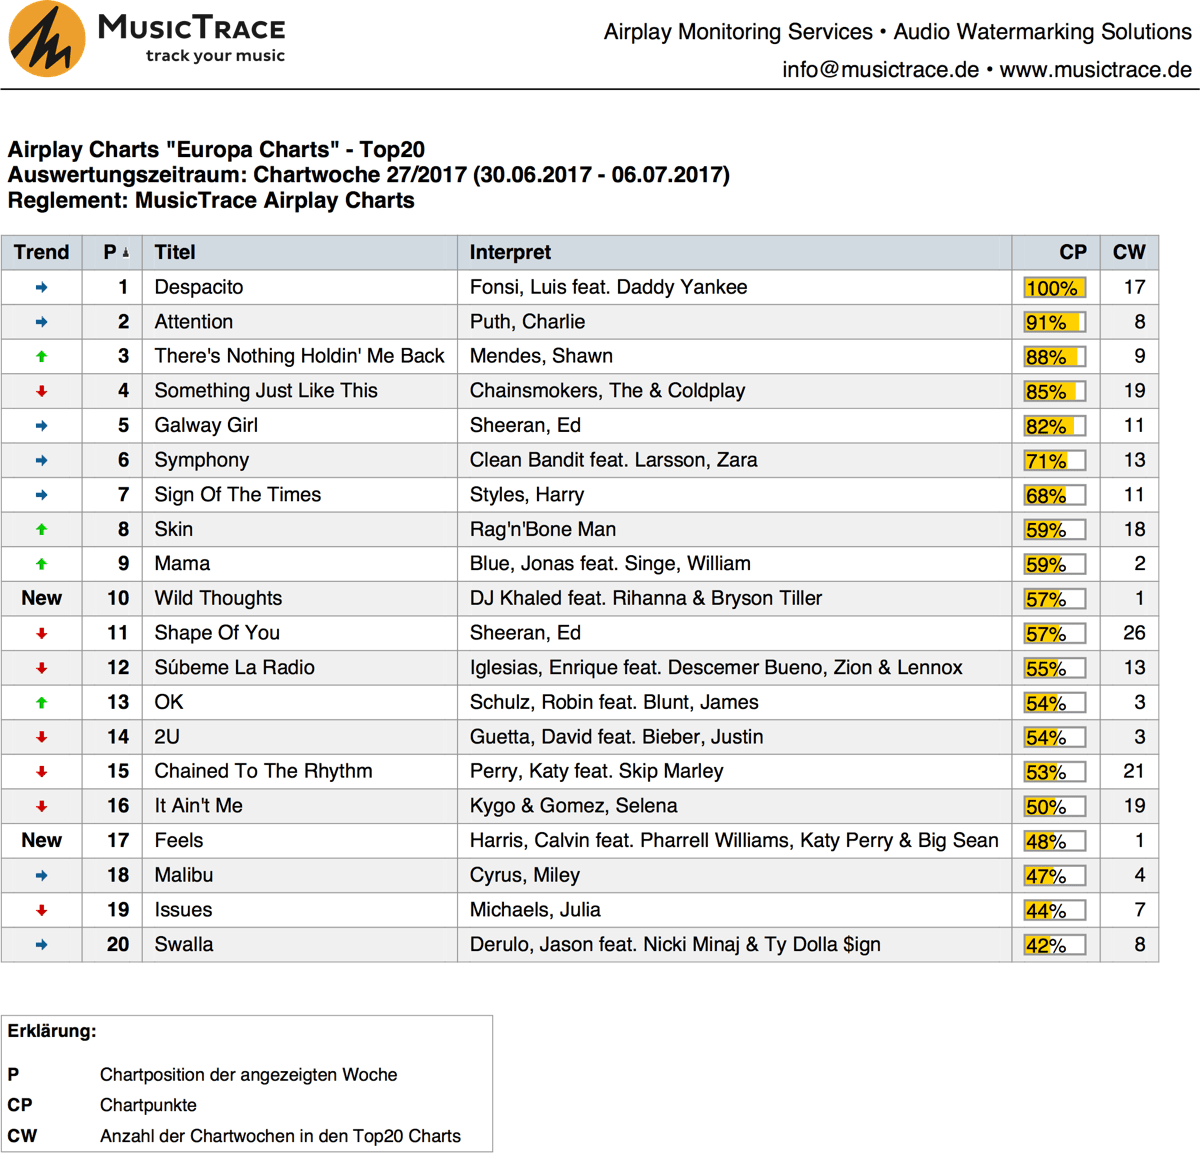 MusicTrace Airplay Charts Europa Top20